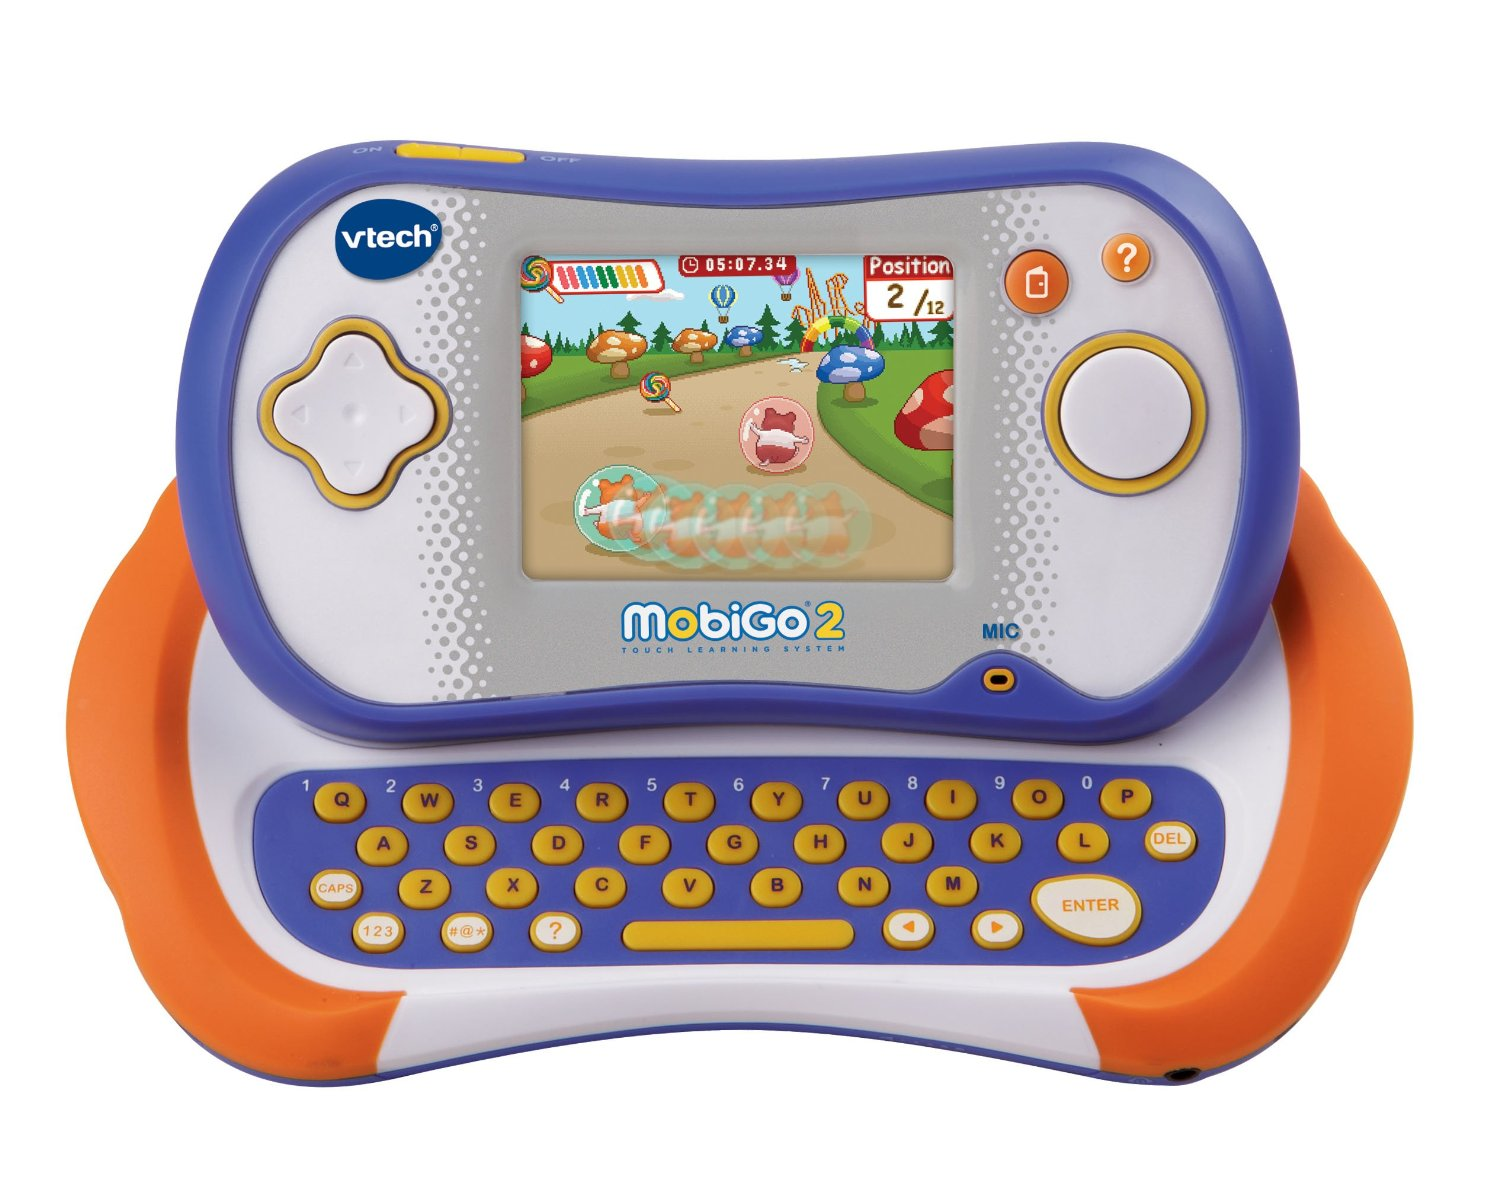 vtech-mobigo-2-touch-learning-system_4